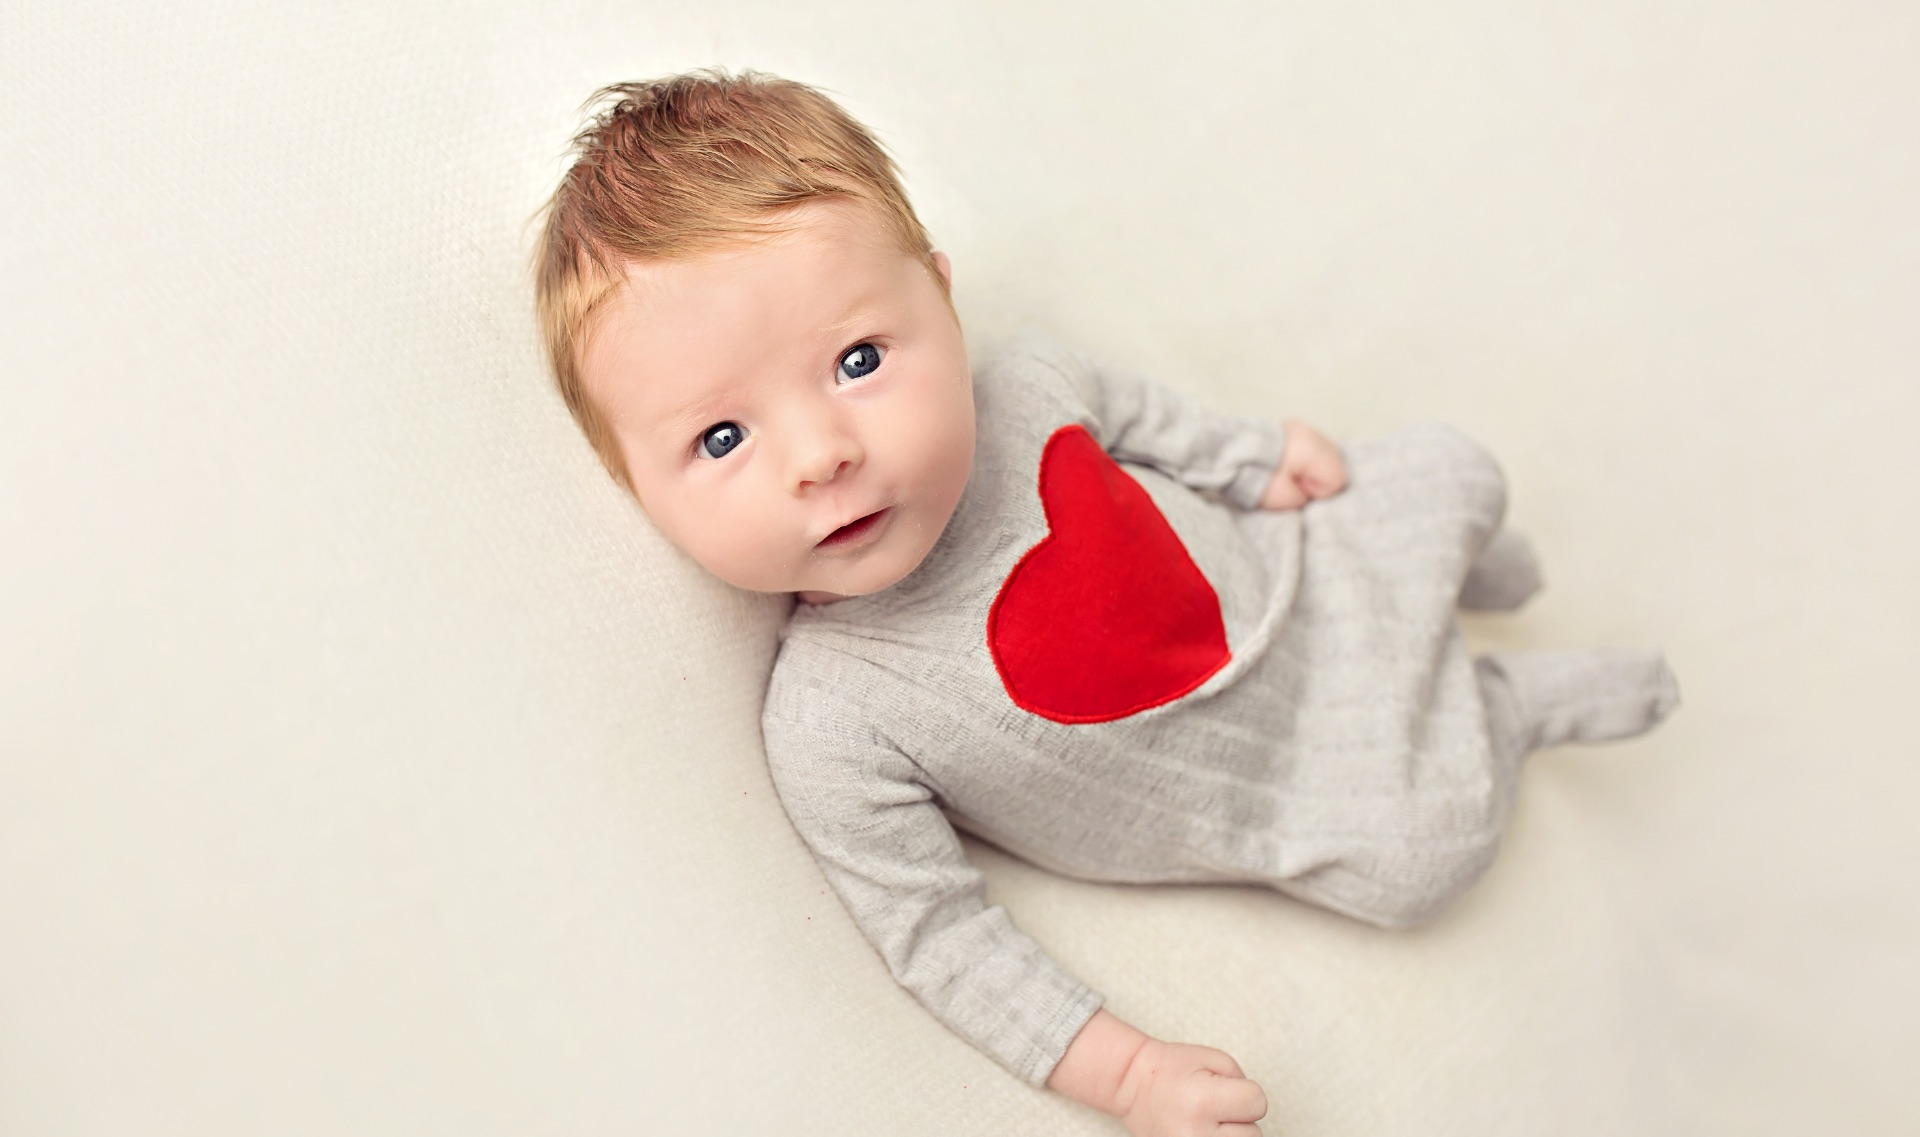 A close-up of Jeremiah as an infant. He's looking up at the camera, while wearing a onesie that has a large red heart sewn onto it.